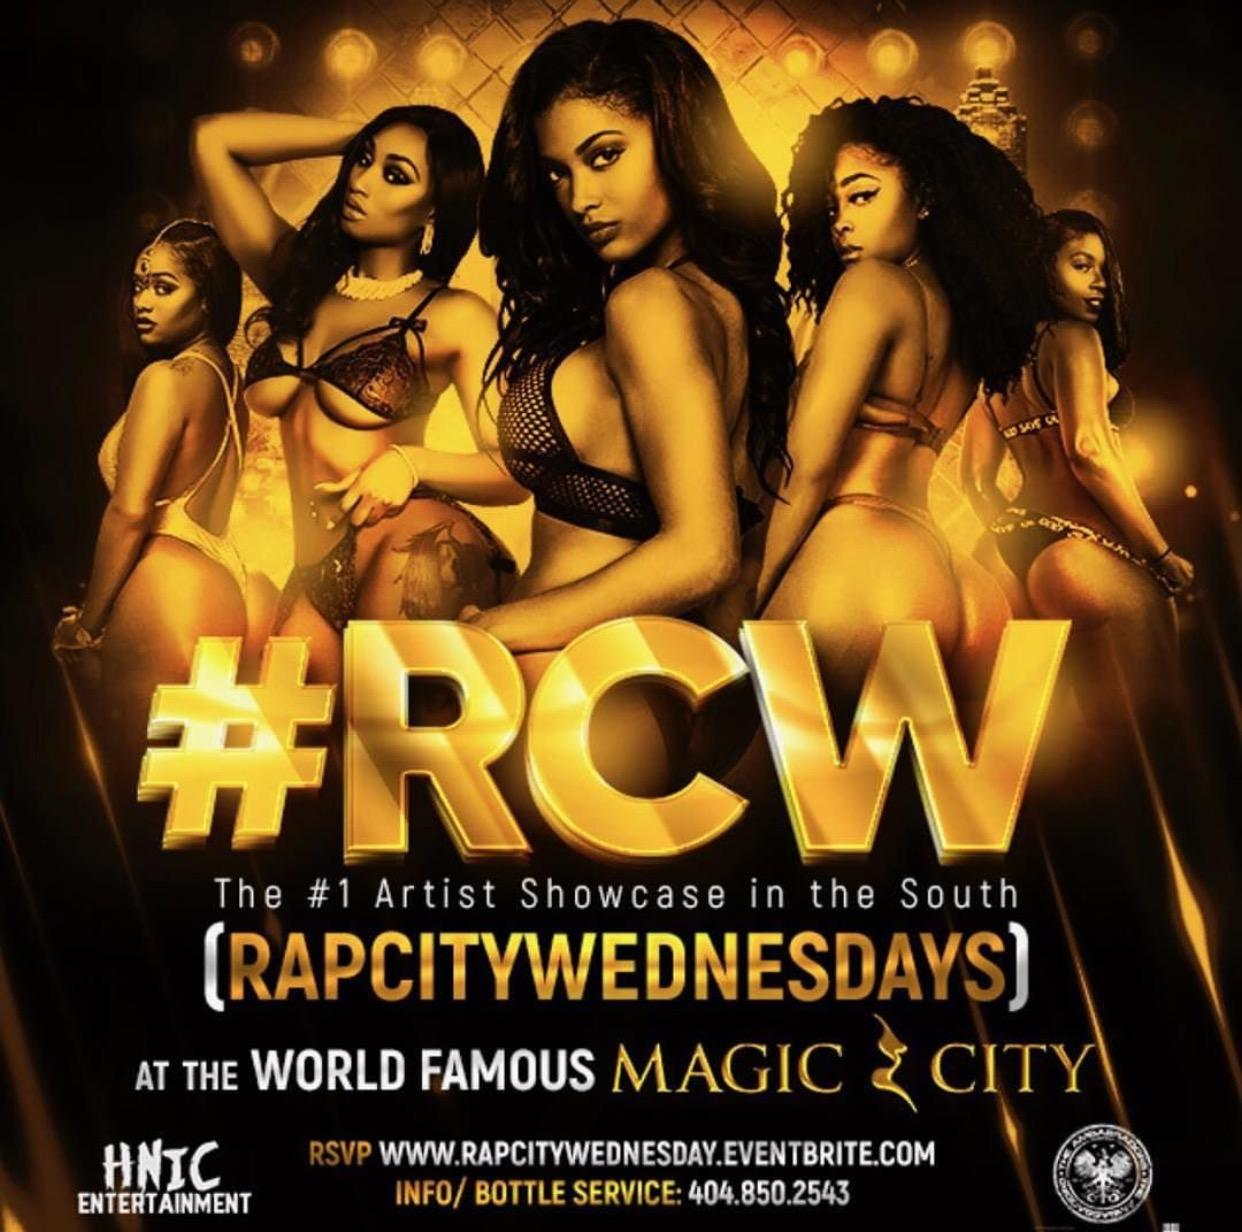 BIGGEST OPPORTUNITY FOR ARTISTS: MAGIC CITY EACH AND EVERY WEDNESDAY. BIGGEST OPPORTUNITY FOR ARTISTS: MAGIC CITY EACH AND EVERY WEDNESDAY